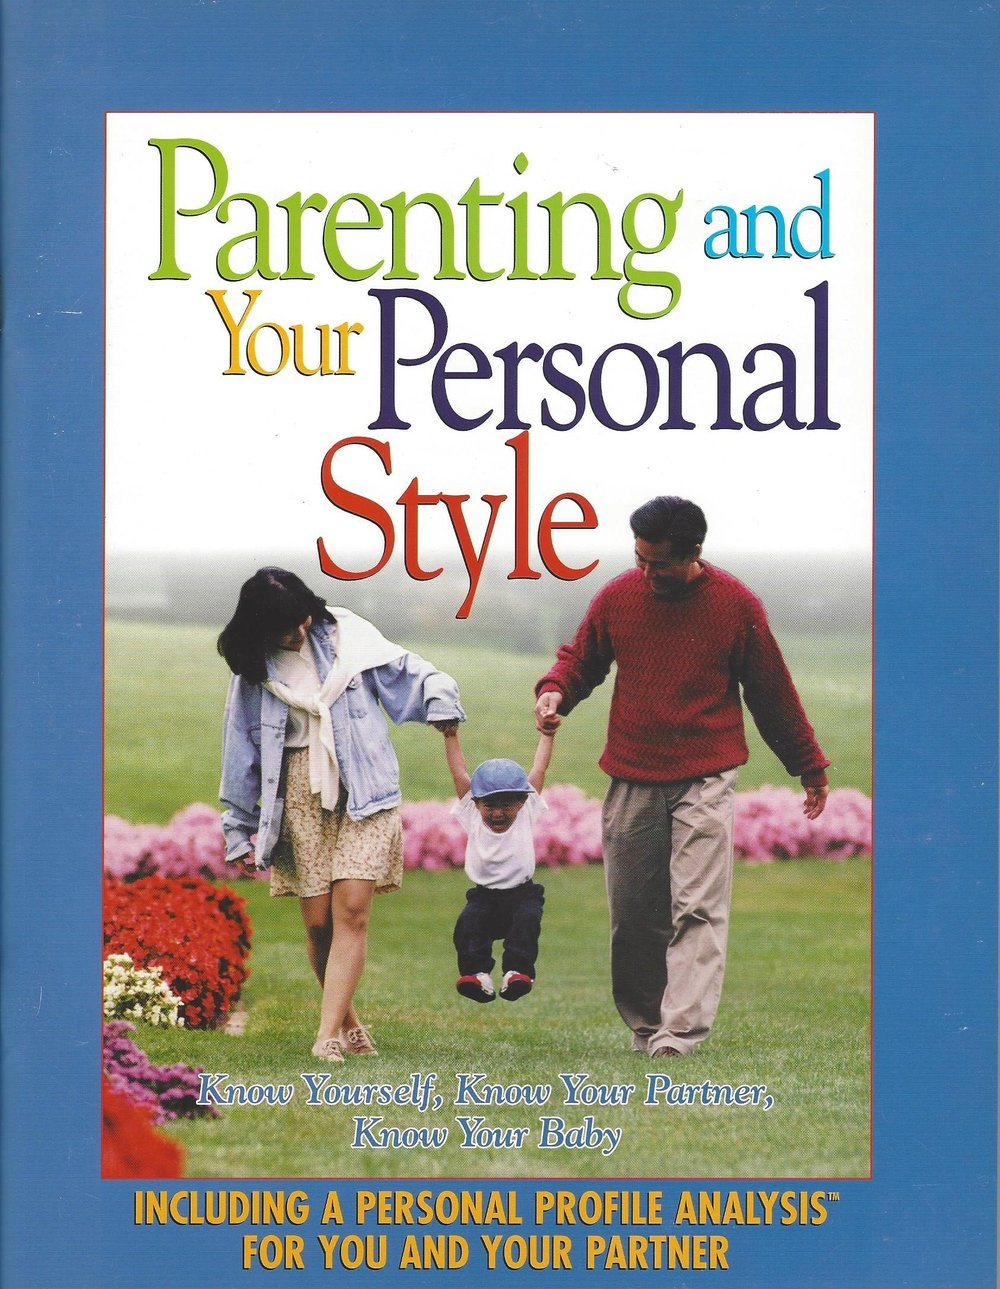 Parenting and Your Personal Style By  Penny Shore with consultants Sean Magennis and Otto Weininger, Ph.D.